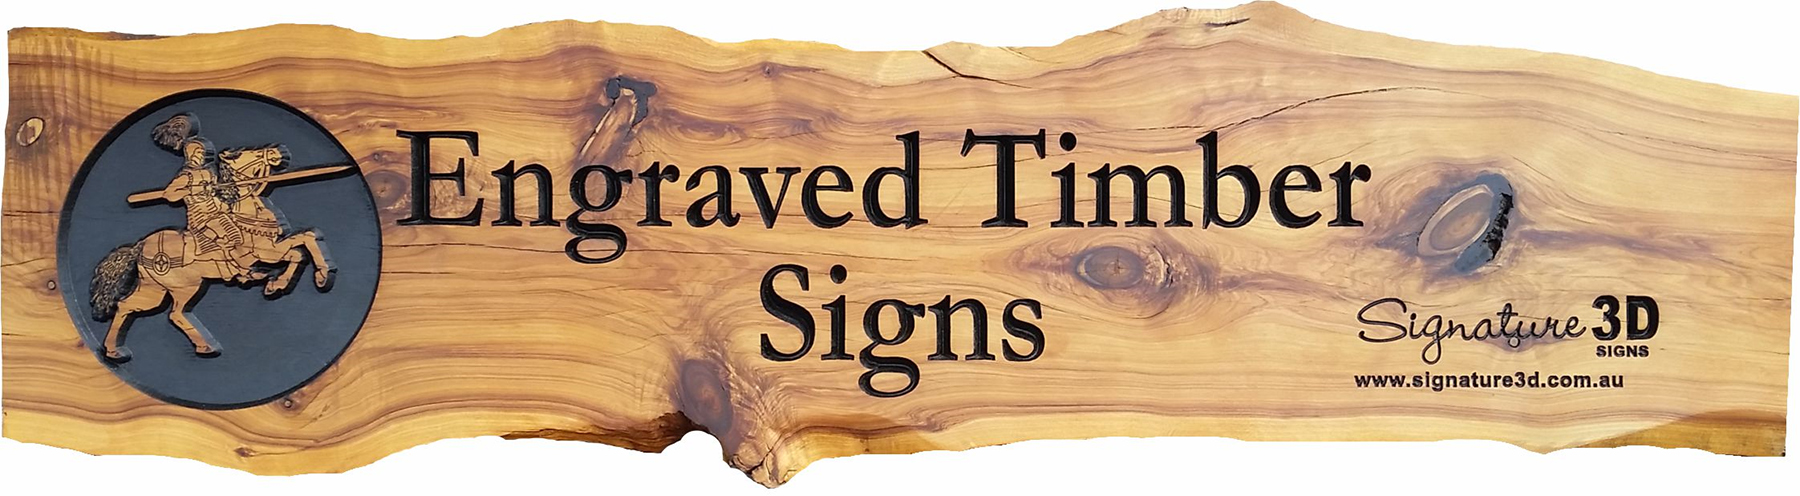 Signature 3d Engraved Timber Signs